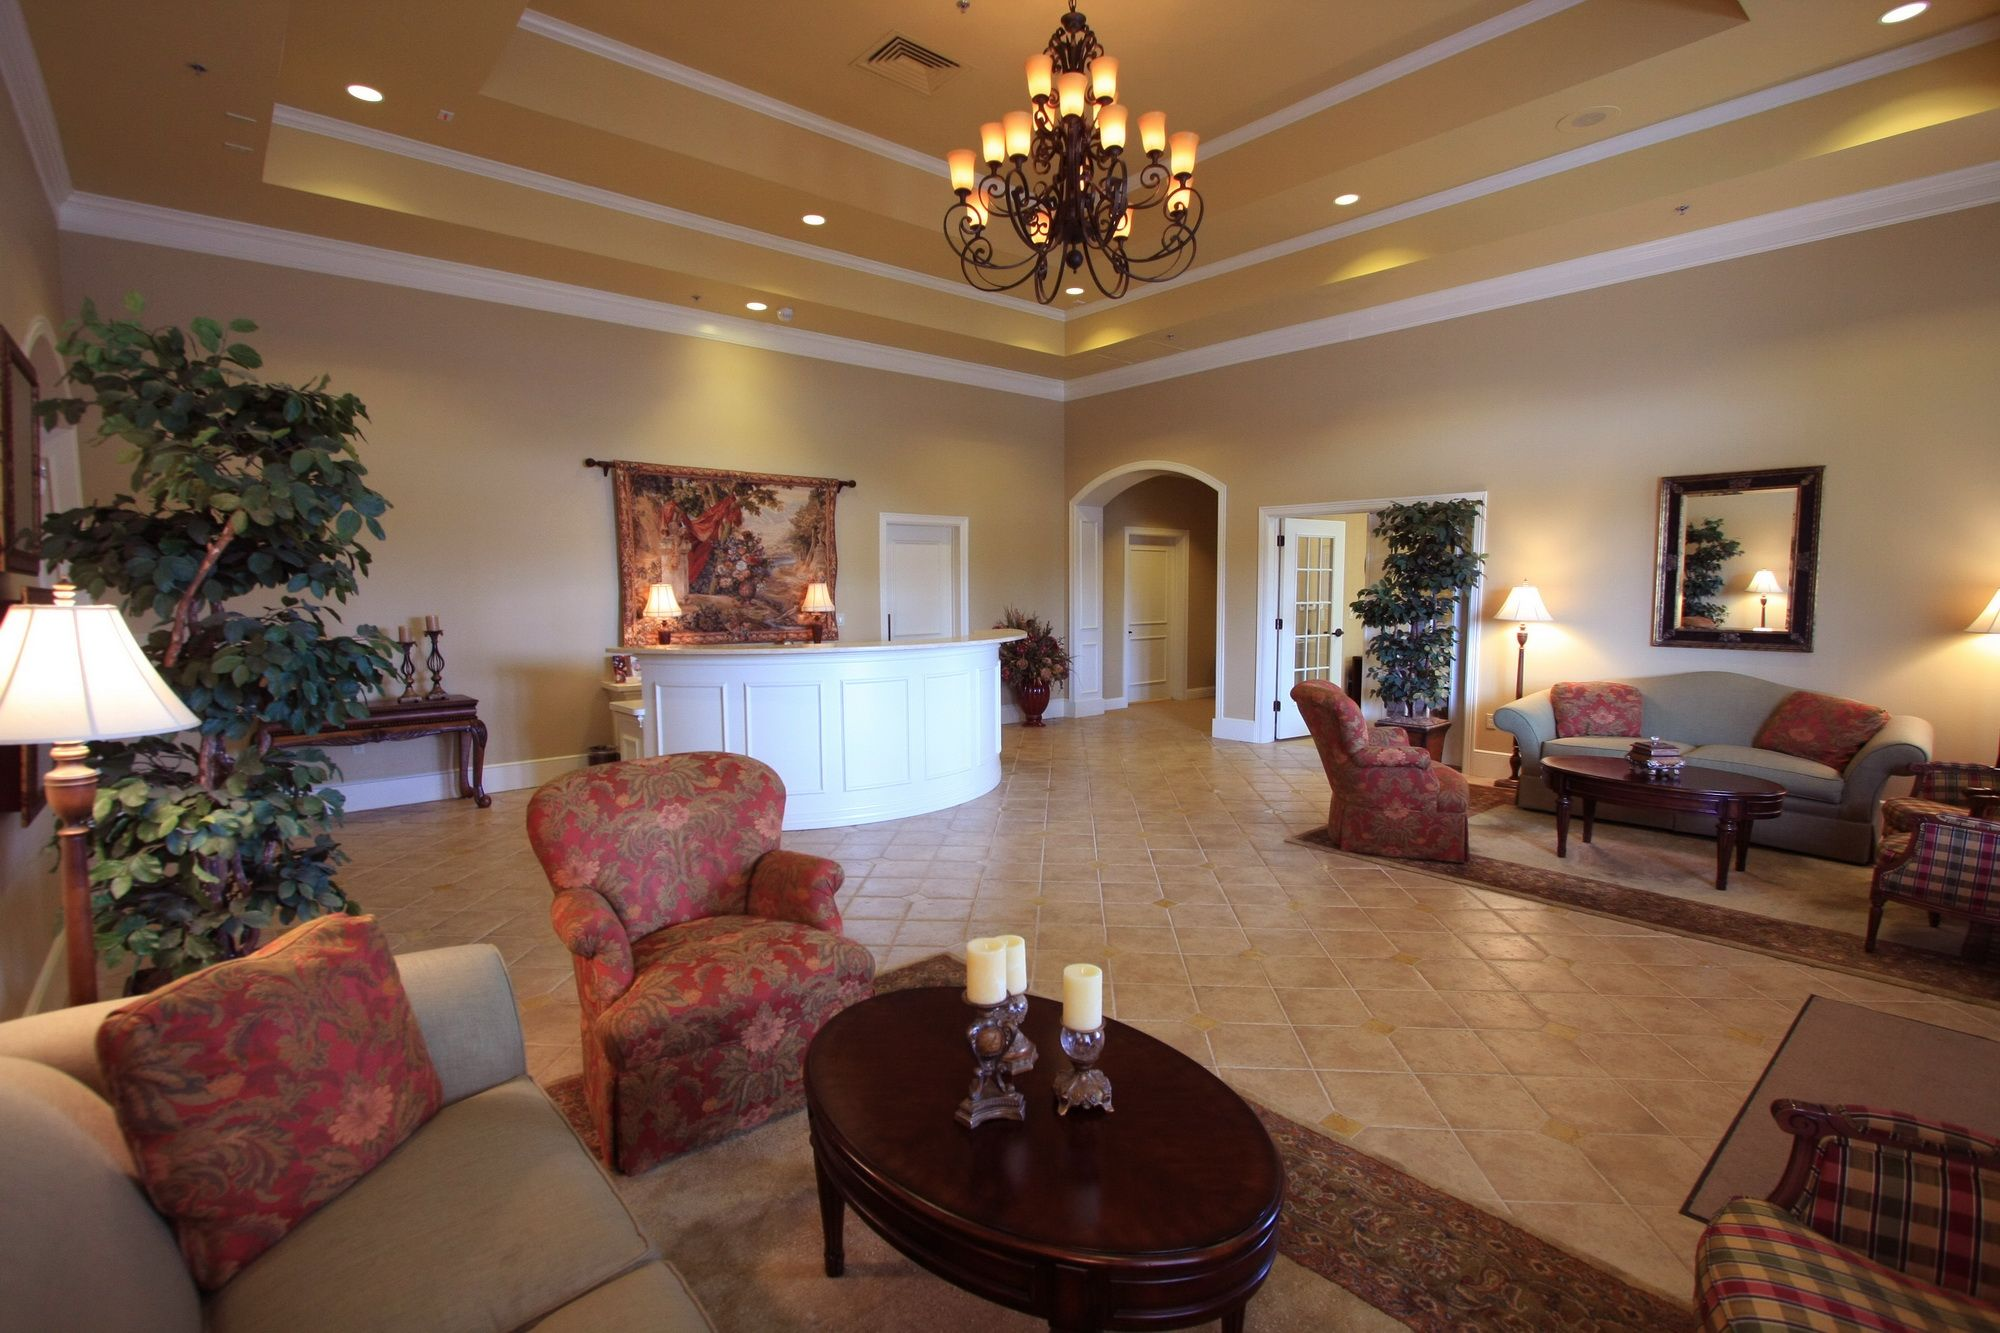 Funeral Home Interior Colors Décor Which Fit With The French Country Architecture